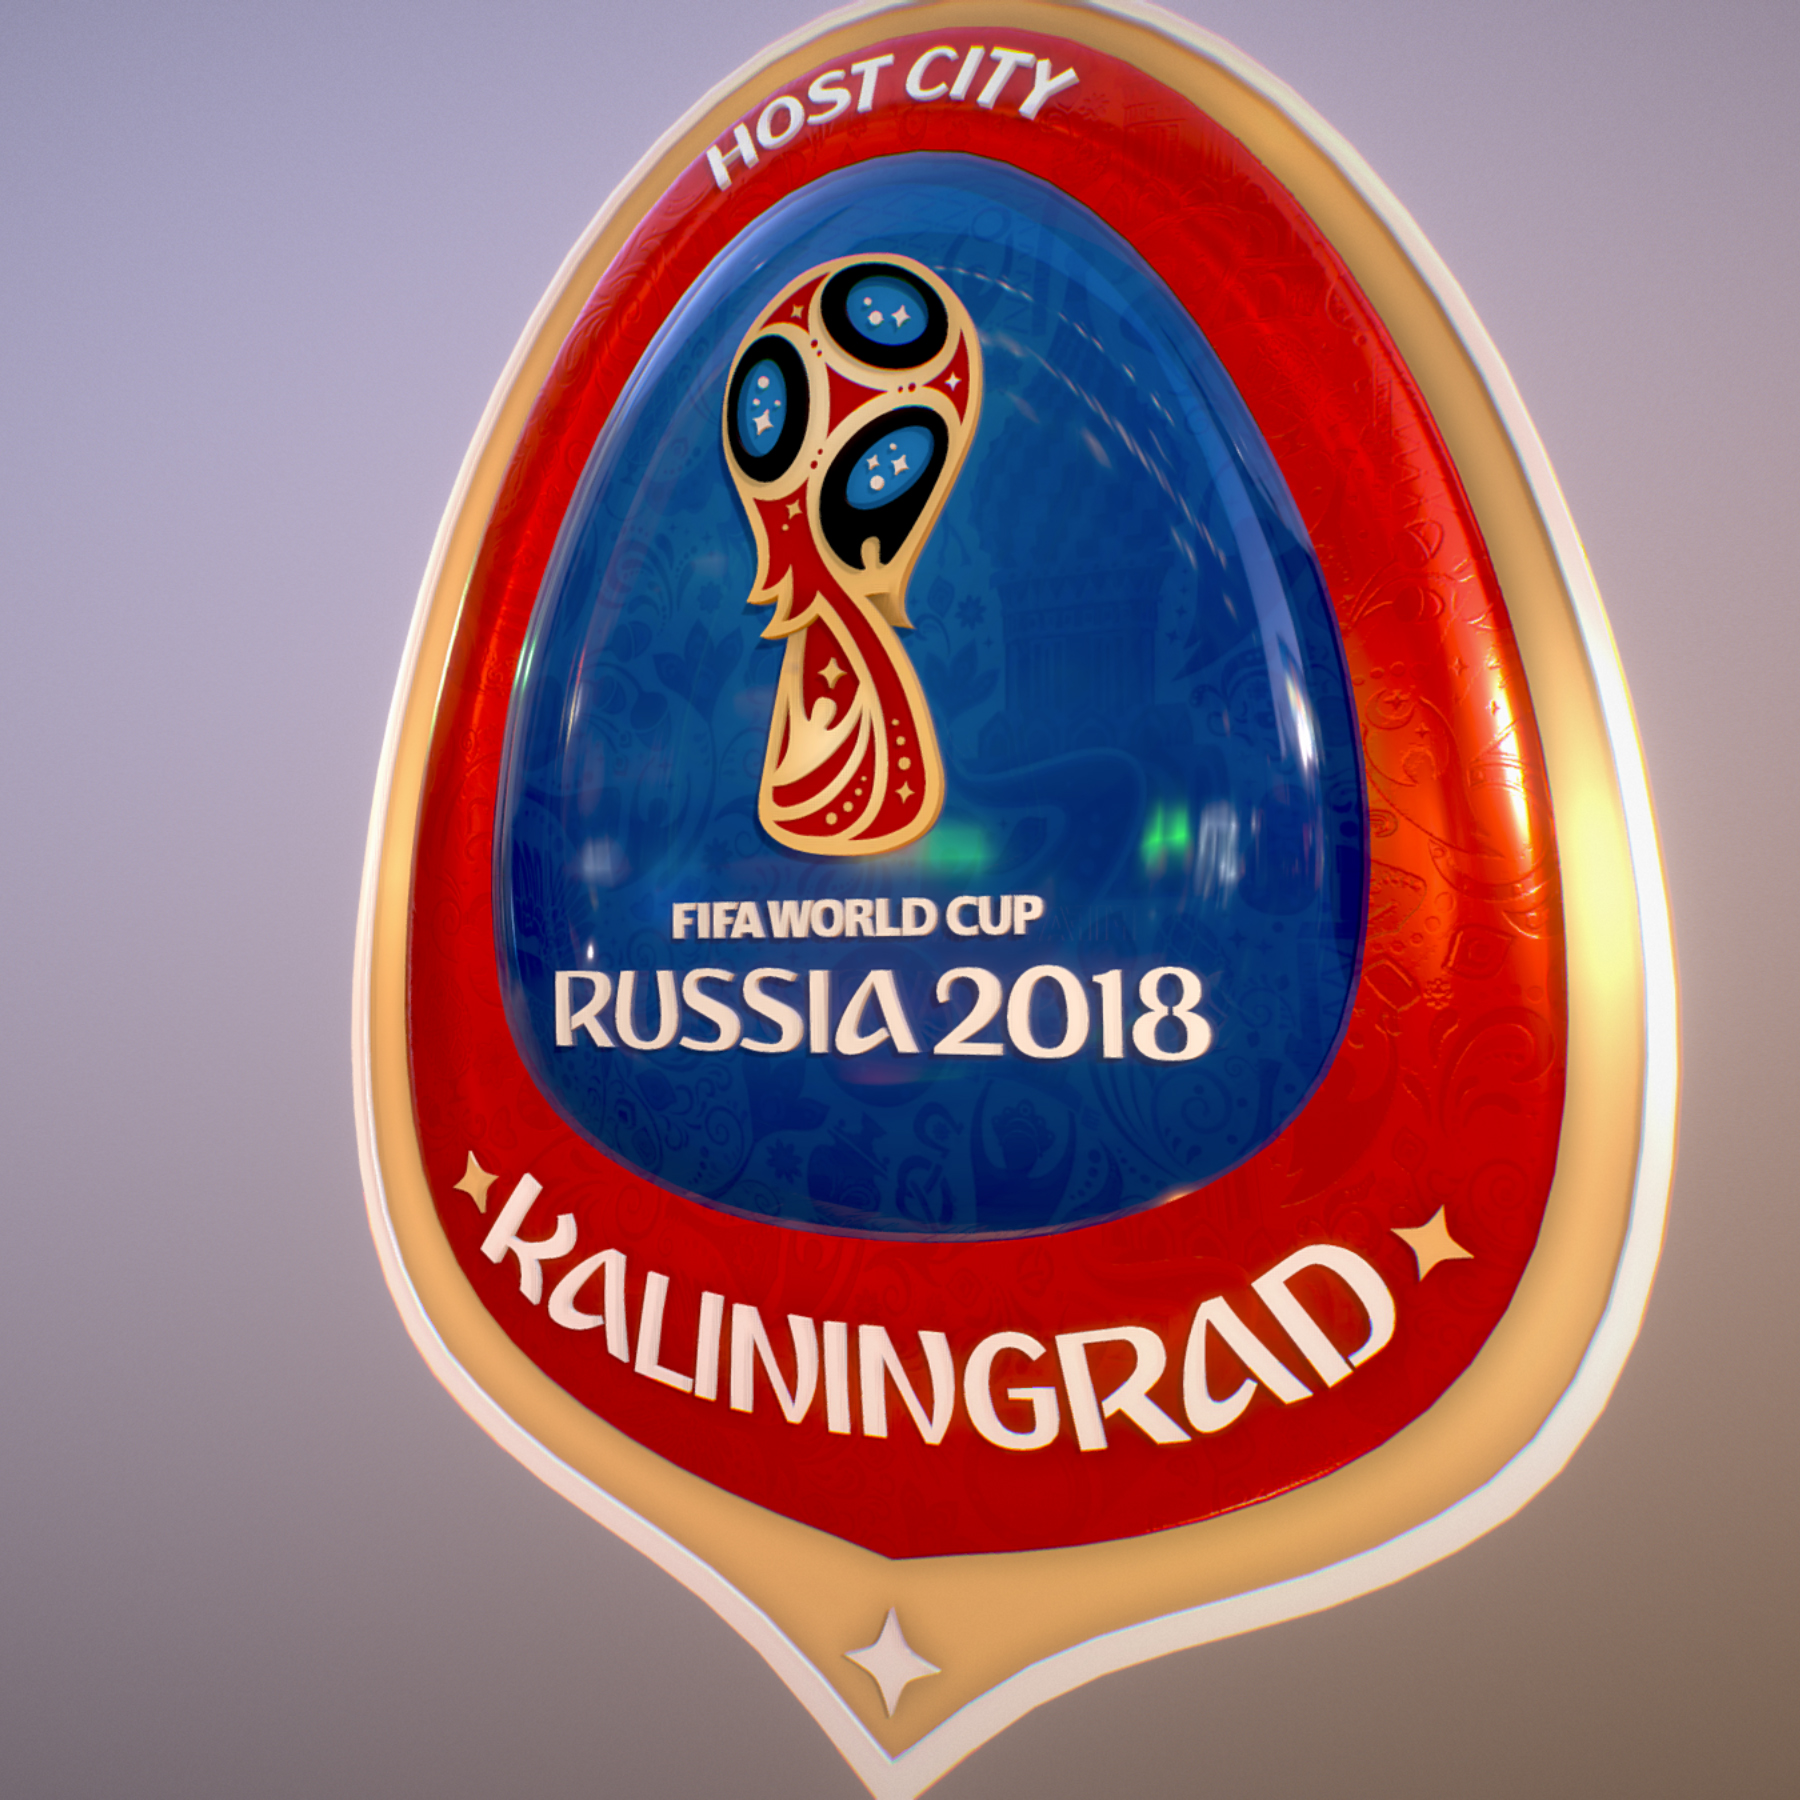 kaliningrad city world cup Rusija 2018 simbol 3d model max fbx jpeg jpg ma mb obj 271751